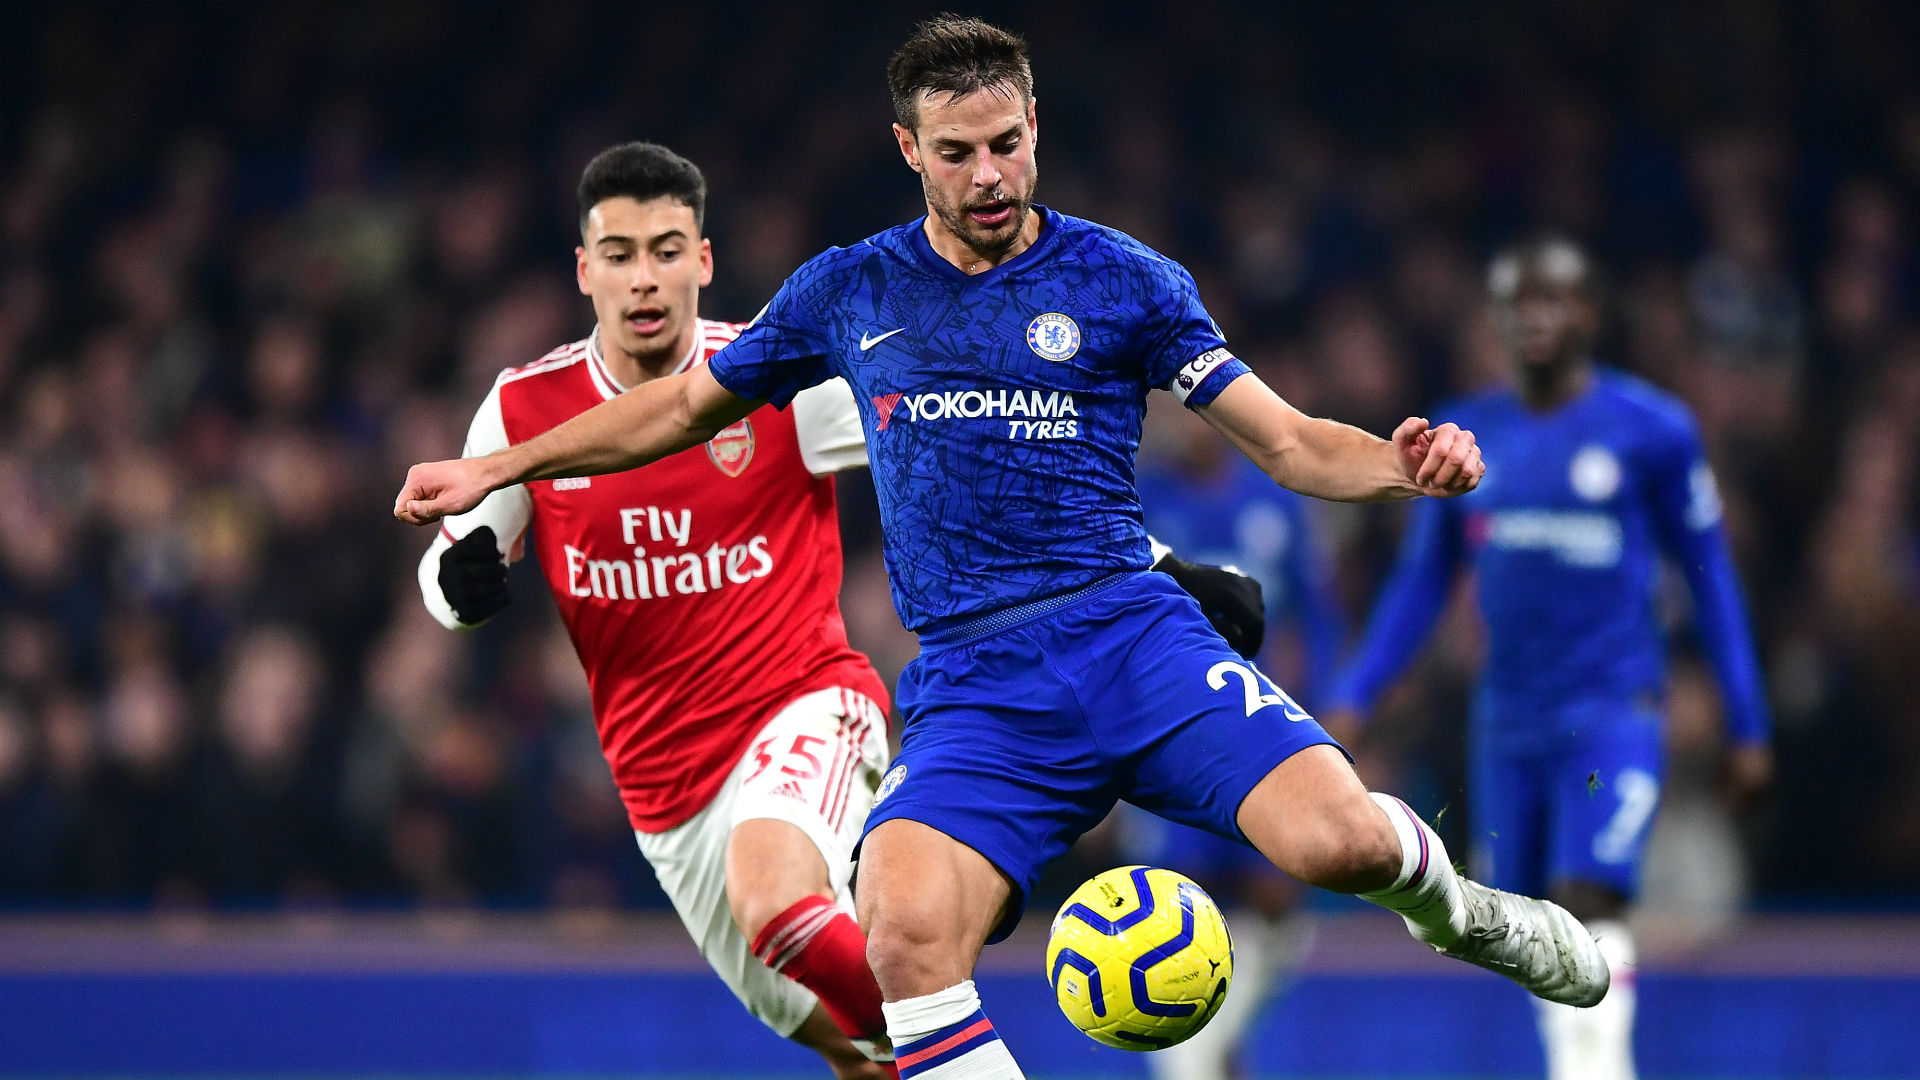 FA Cup final live stream: How to watch Chelsea vs. Arsenal ...